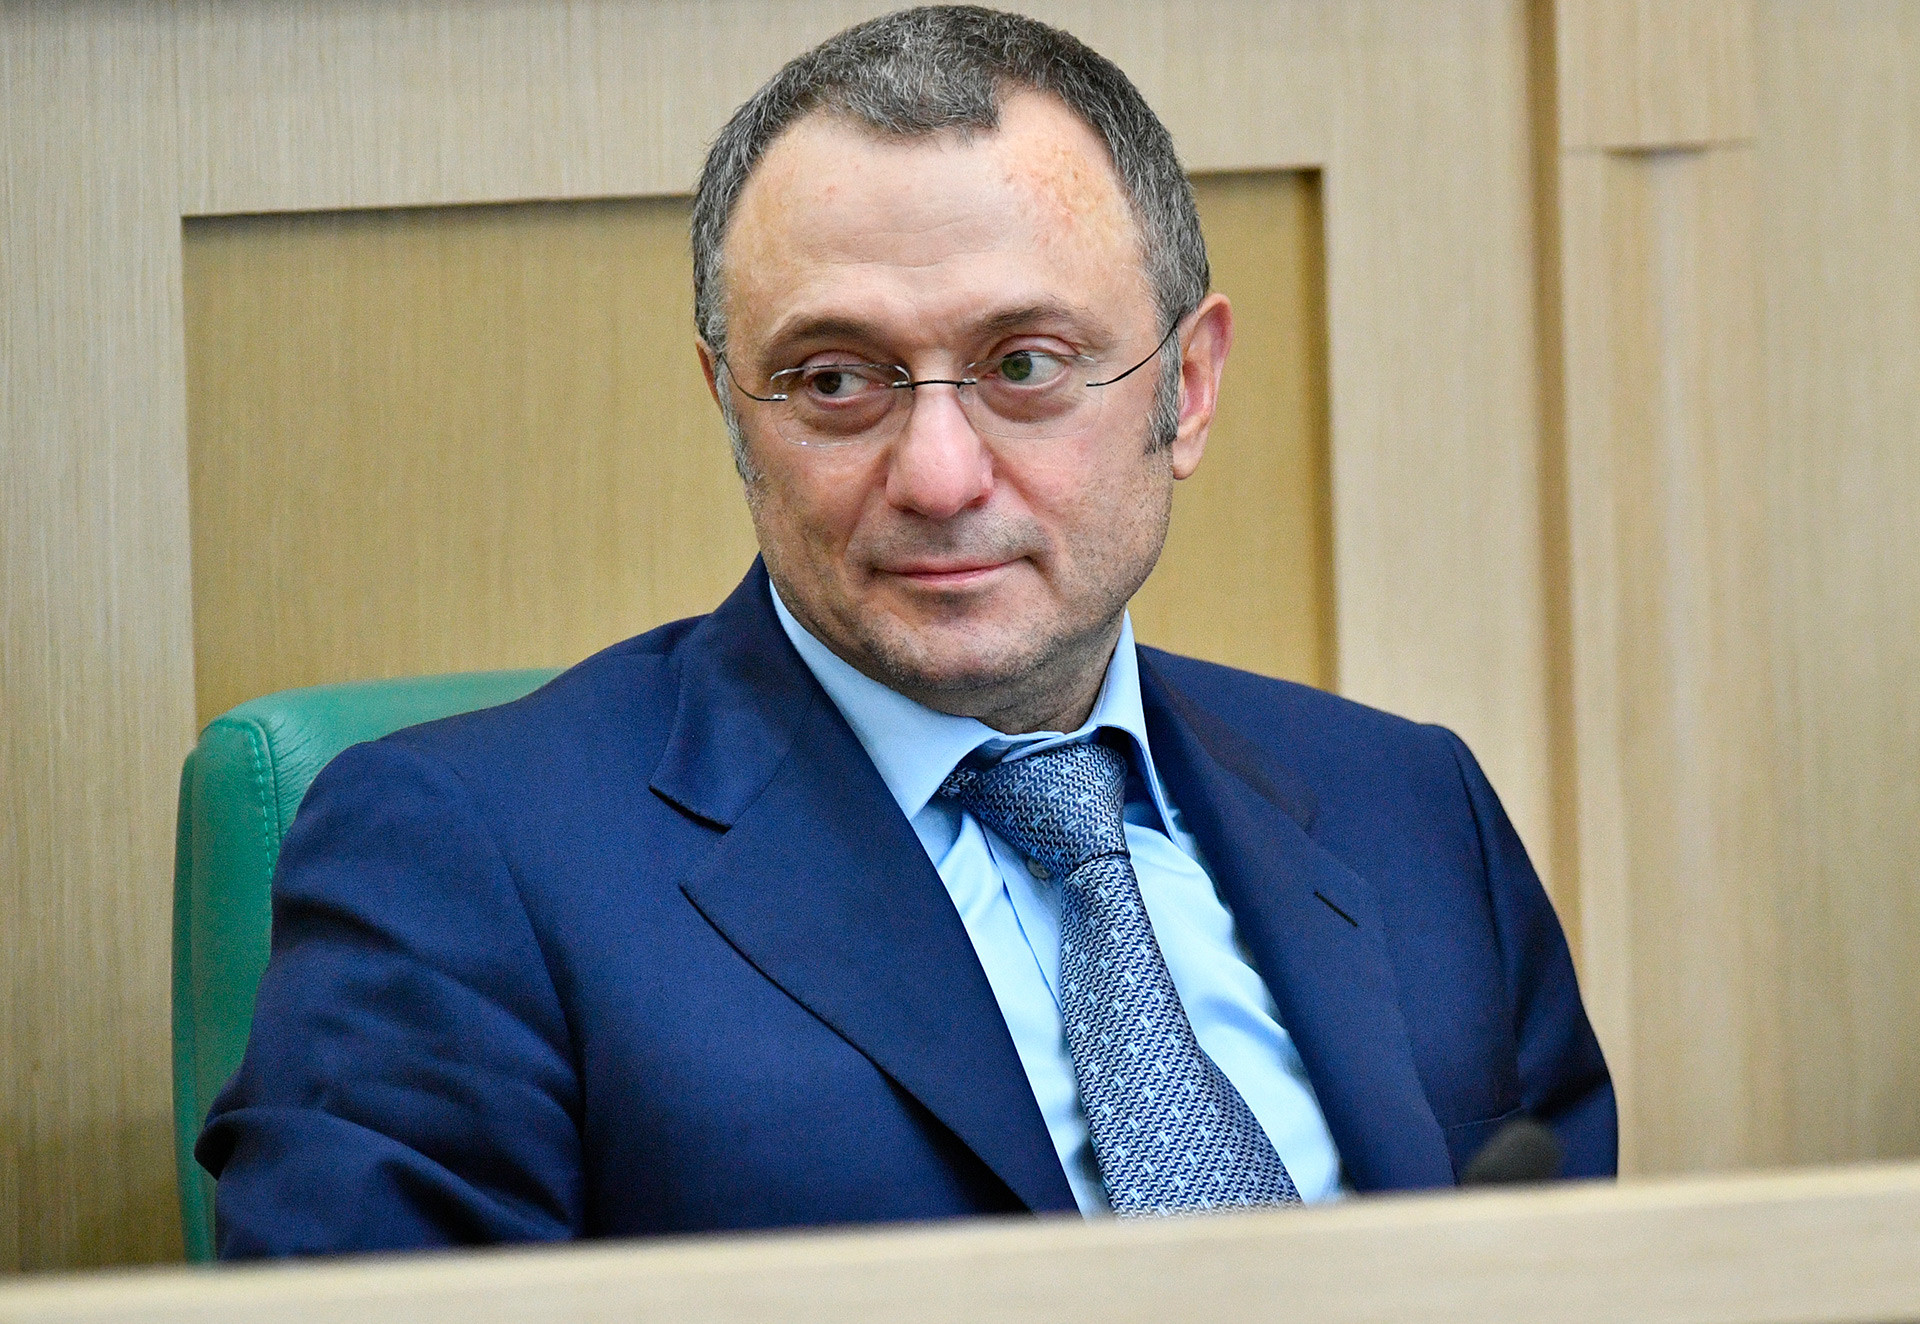 Suleiman Kerimov, the former Anzhi Makhachkala owner behind big-money signings such as Willian and Samuel Eto'o. He sold the club in 2016.